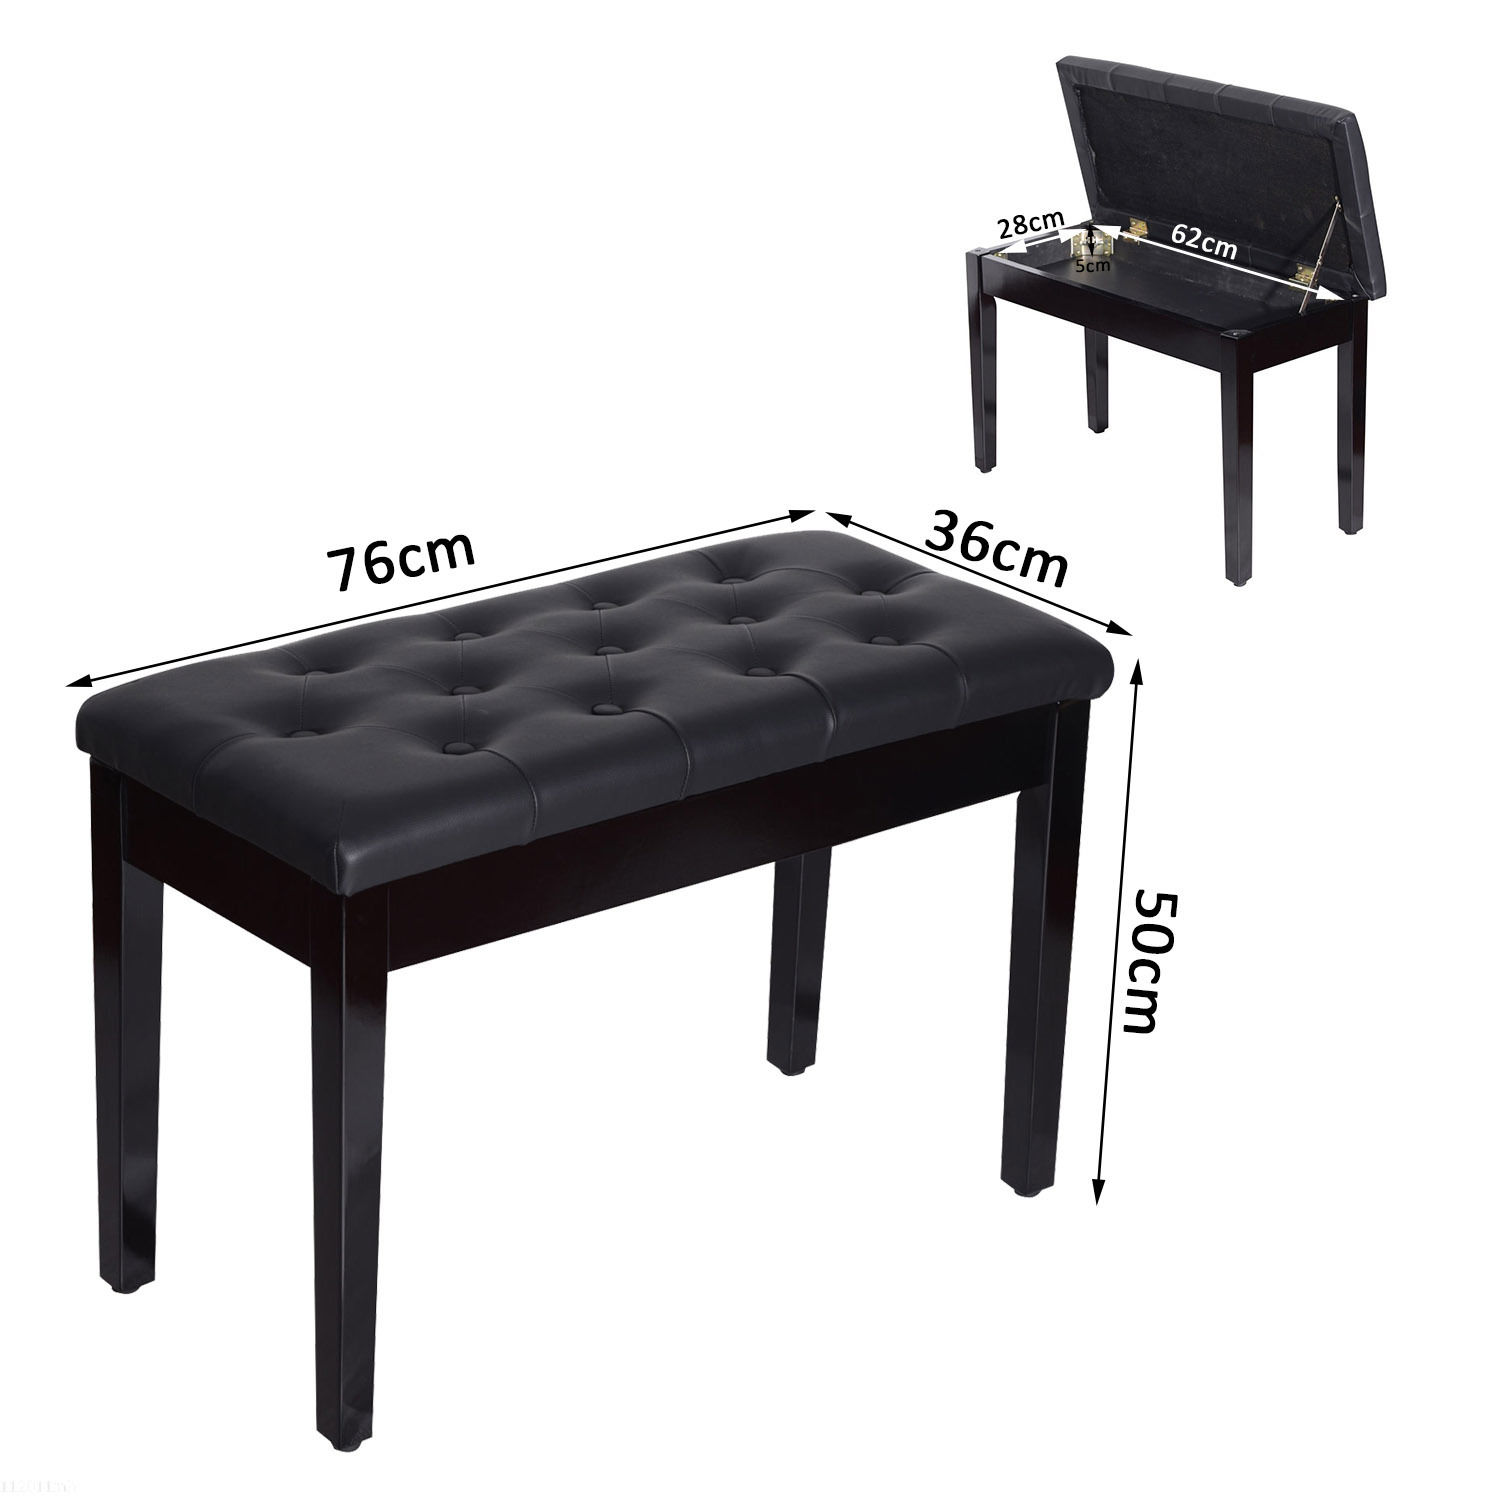 Phenomenal Details About Homcom Classic Piano Bench Padded Seat Stool Solid Wood Wooden Gmtry Best Dining Table And Chair Ideas Images Gmtryco